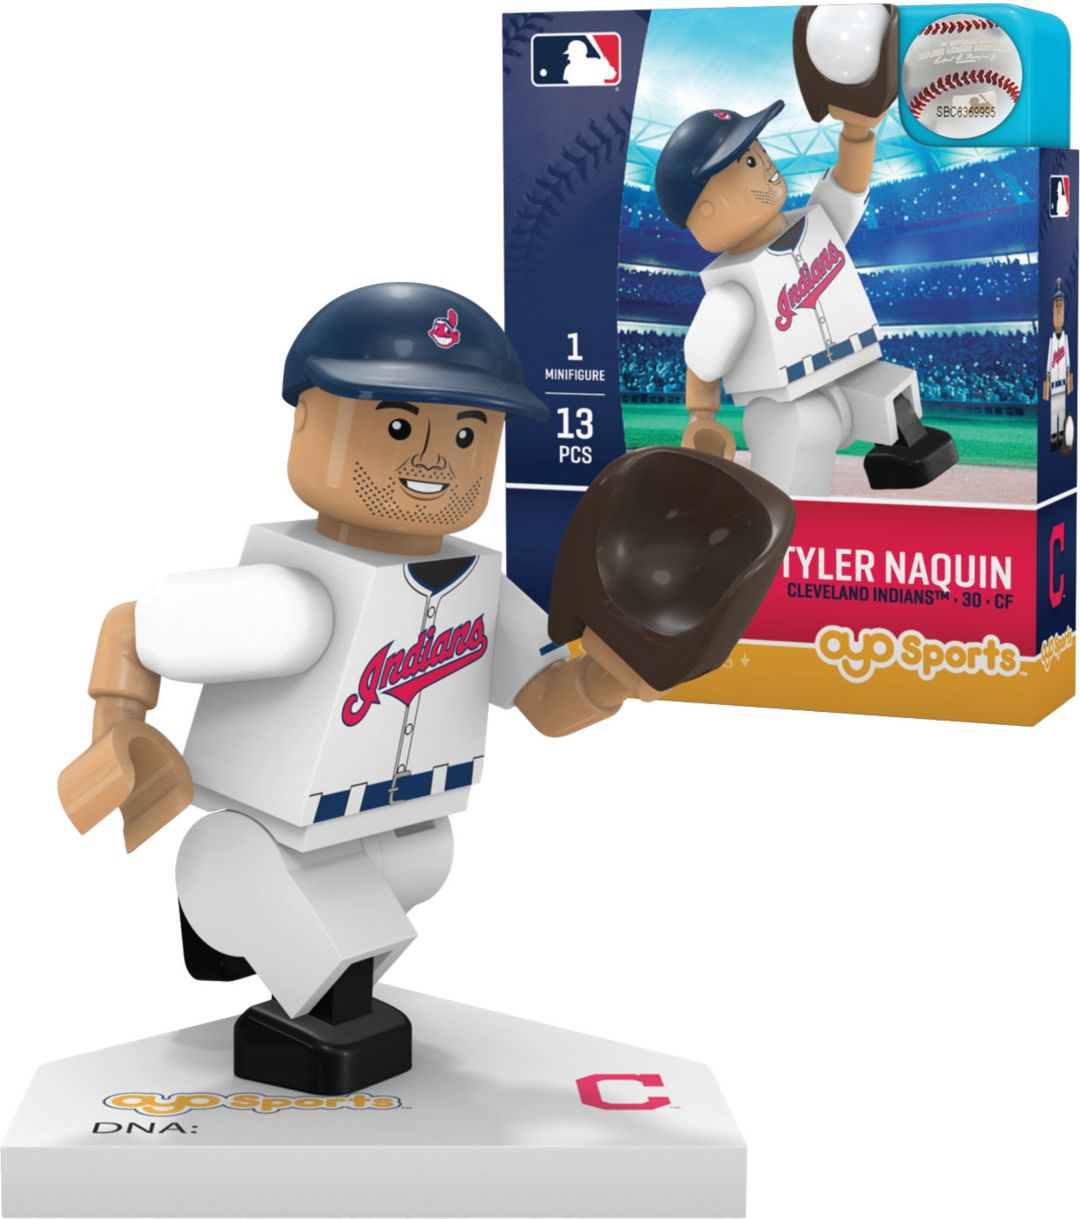 reputable site 1e5d8 1698c OYO Cleveland Indians Tyler Naquin Figurine